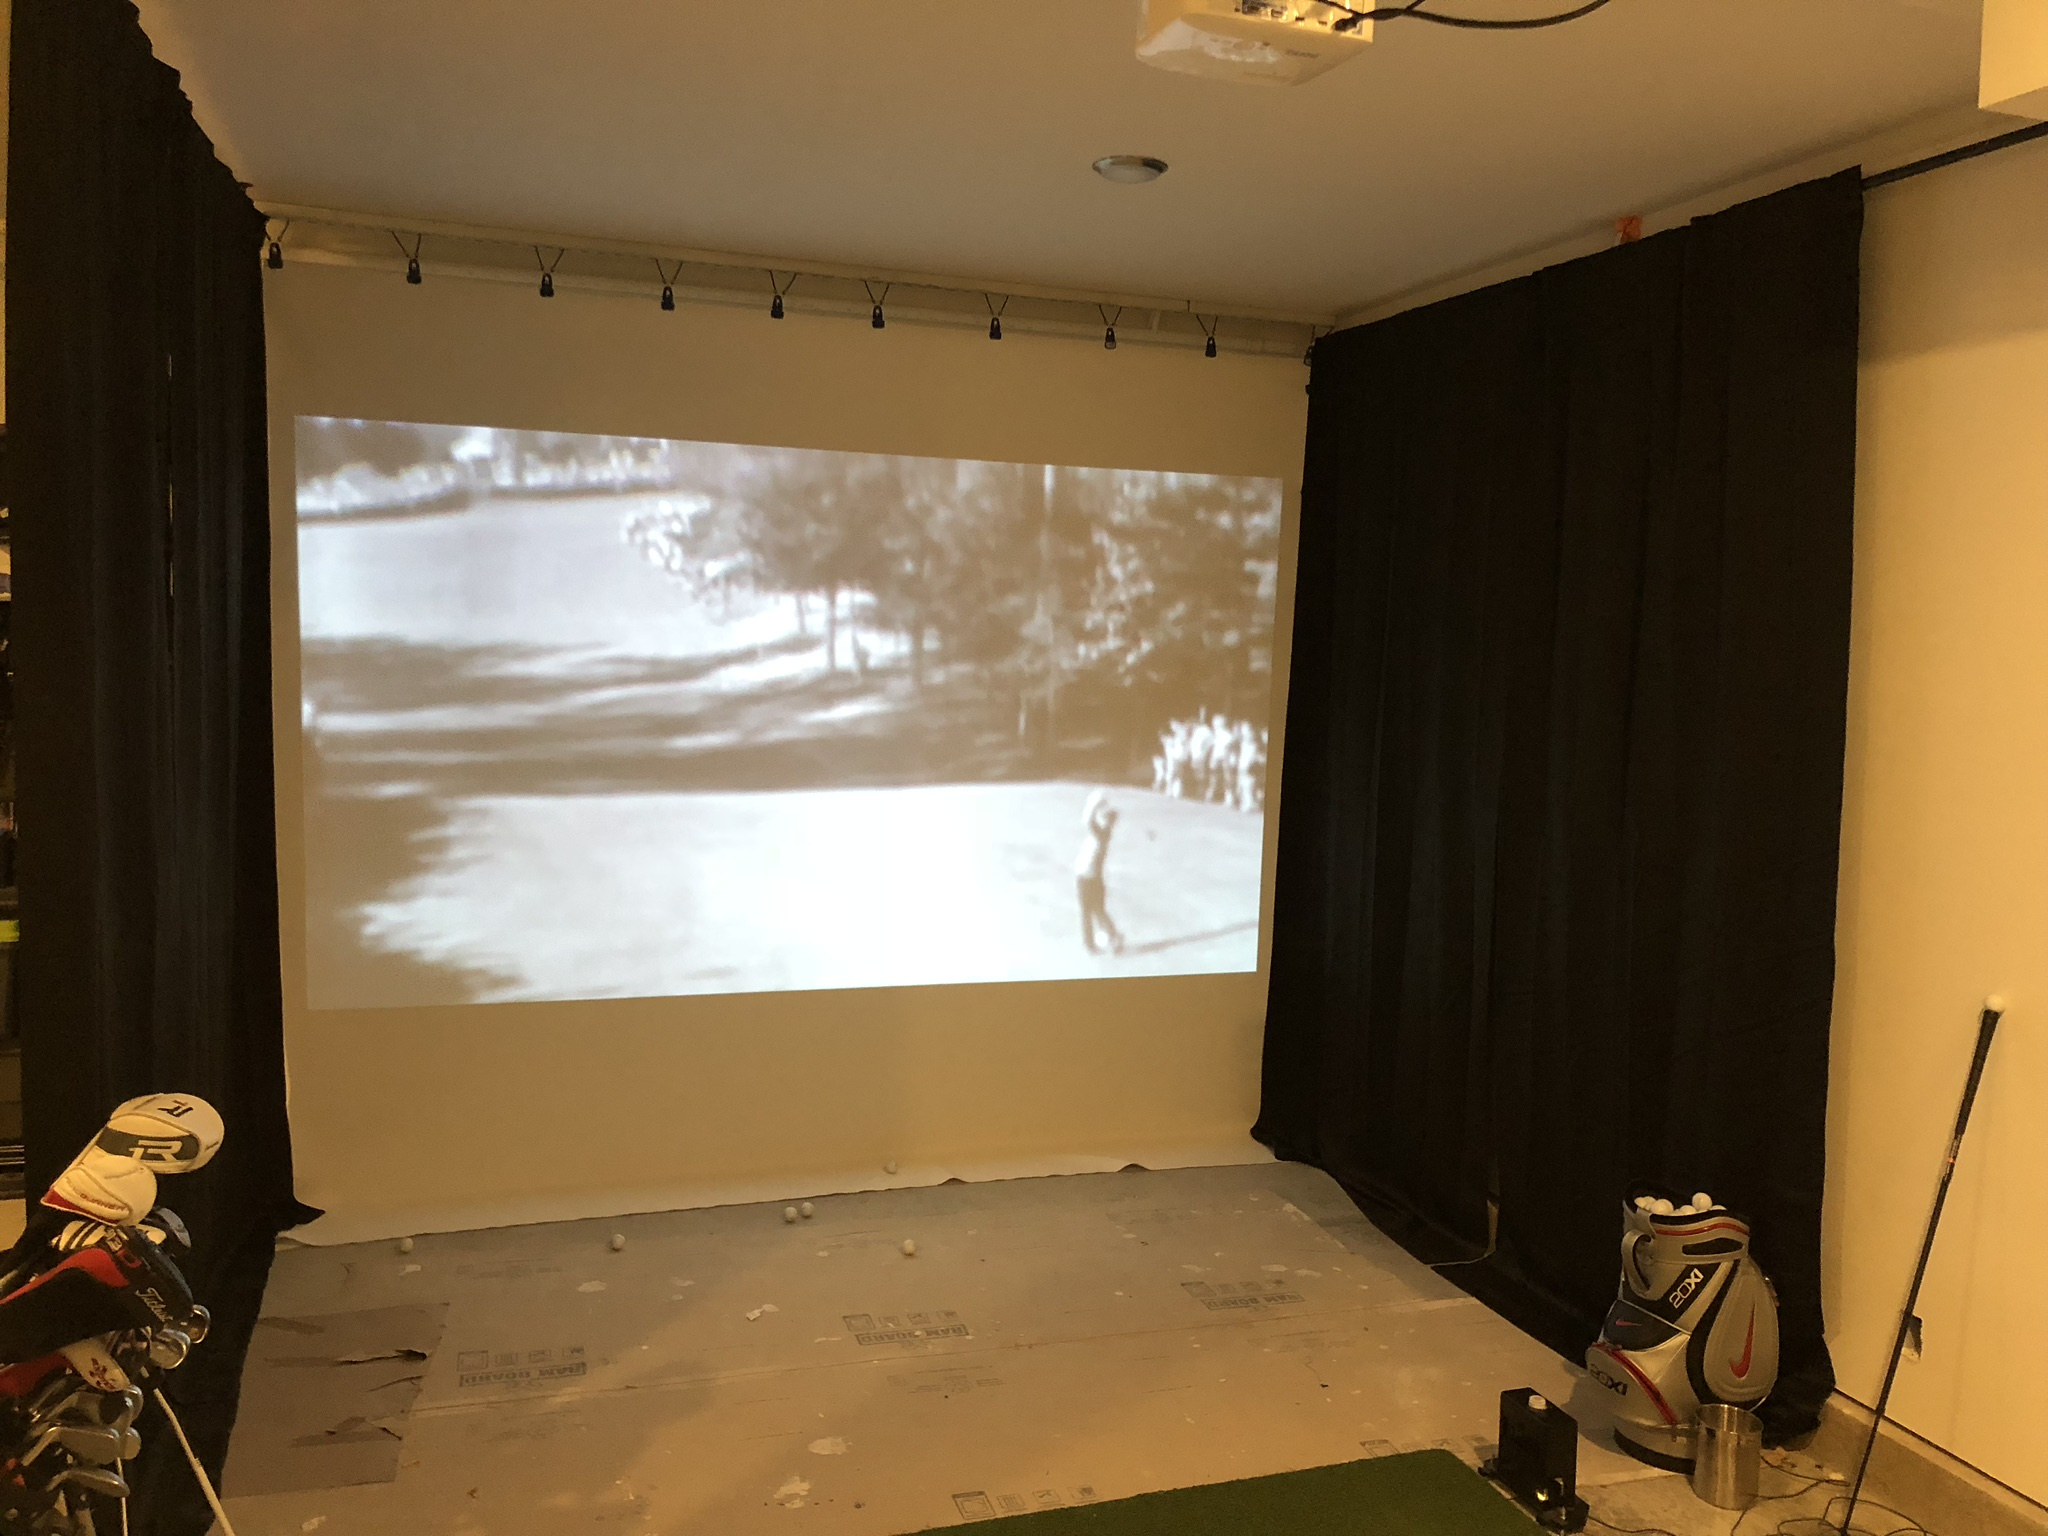 Show Us Your Golf Cave/Simulator